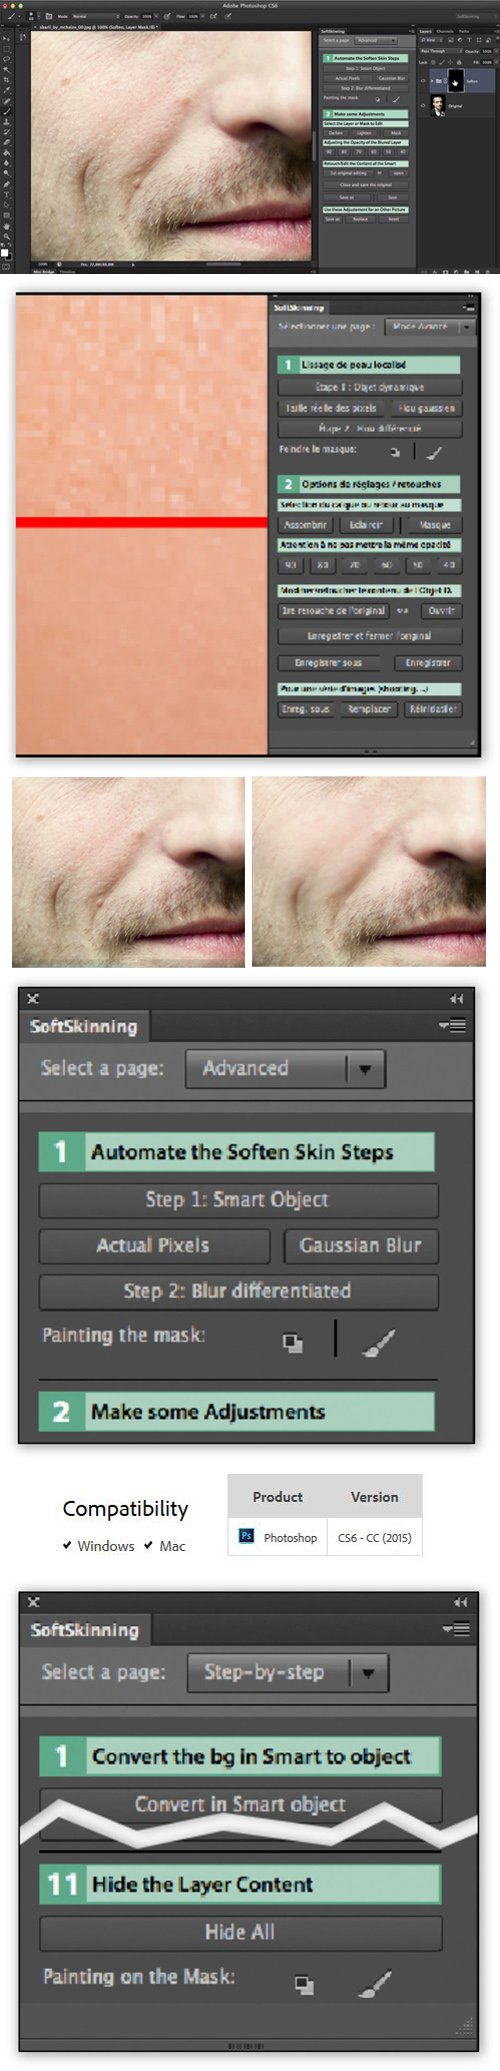 SoftSkinning 2.0.0 Plug-in for Photoshop